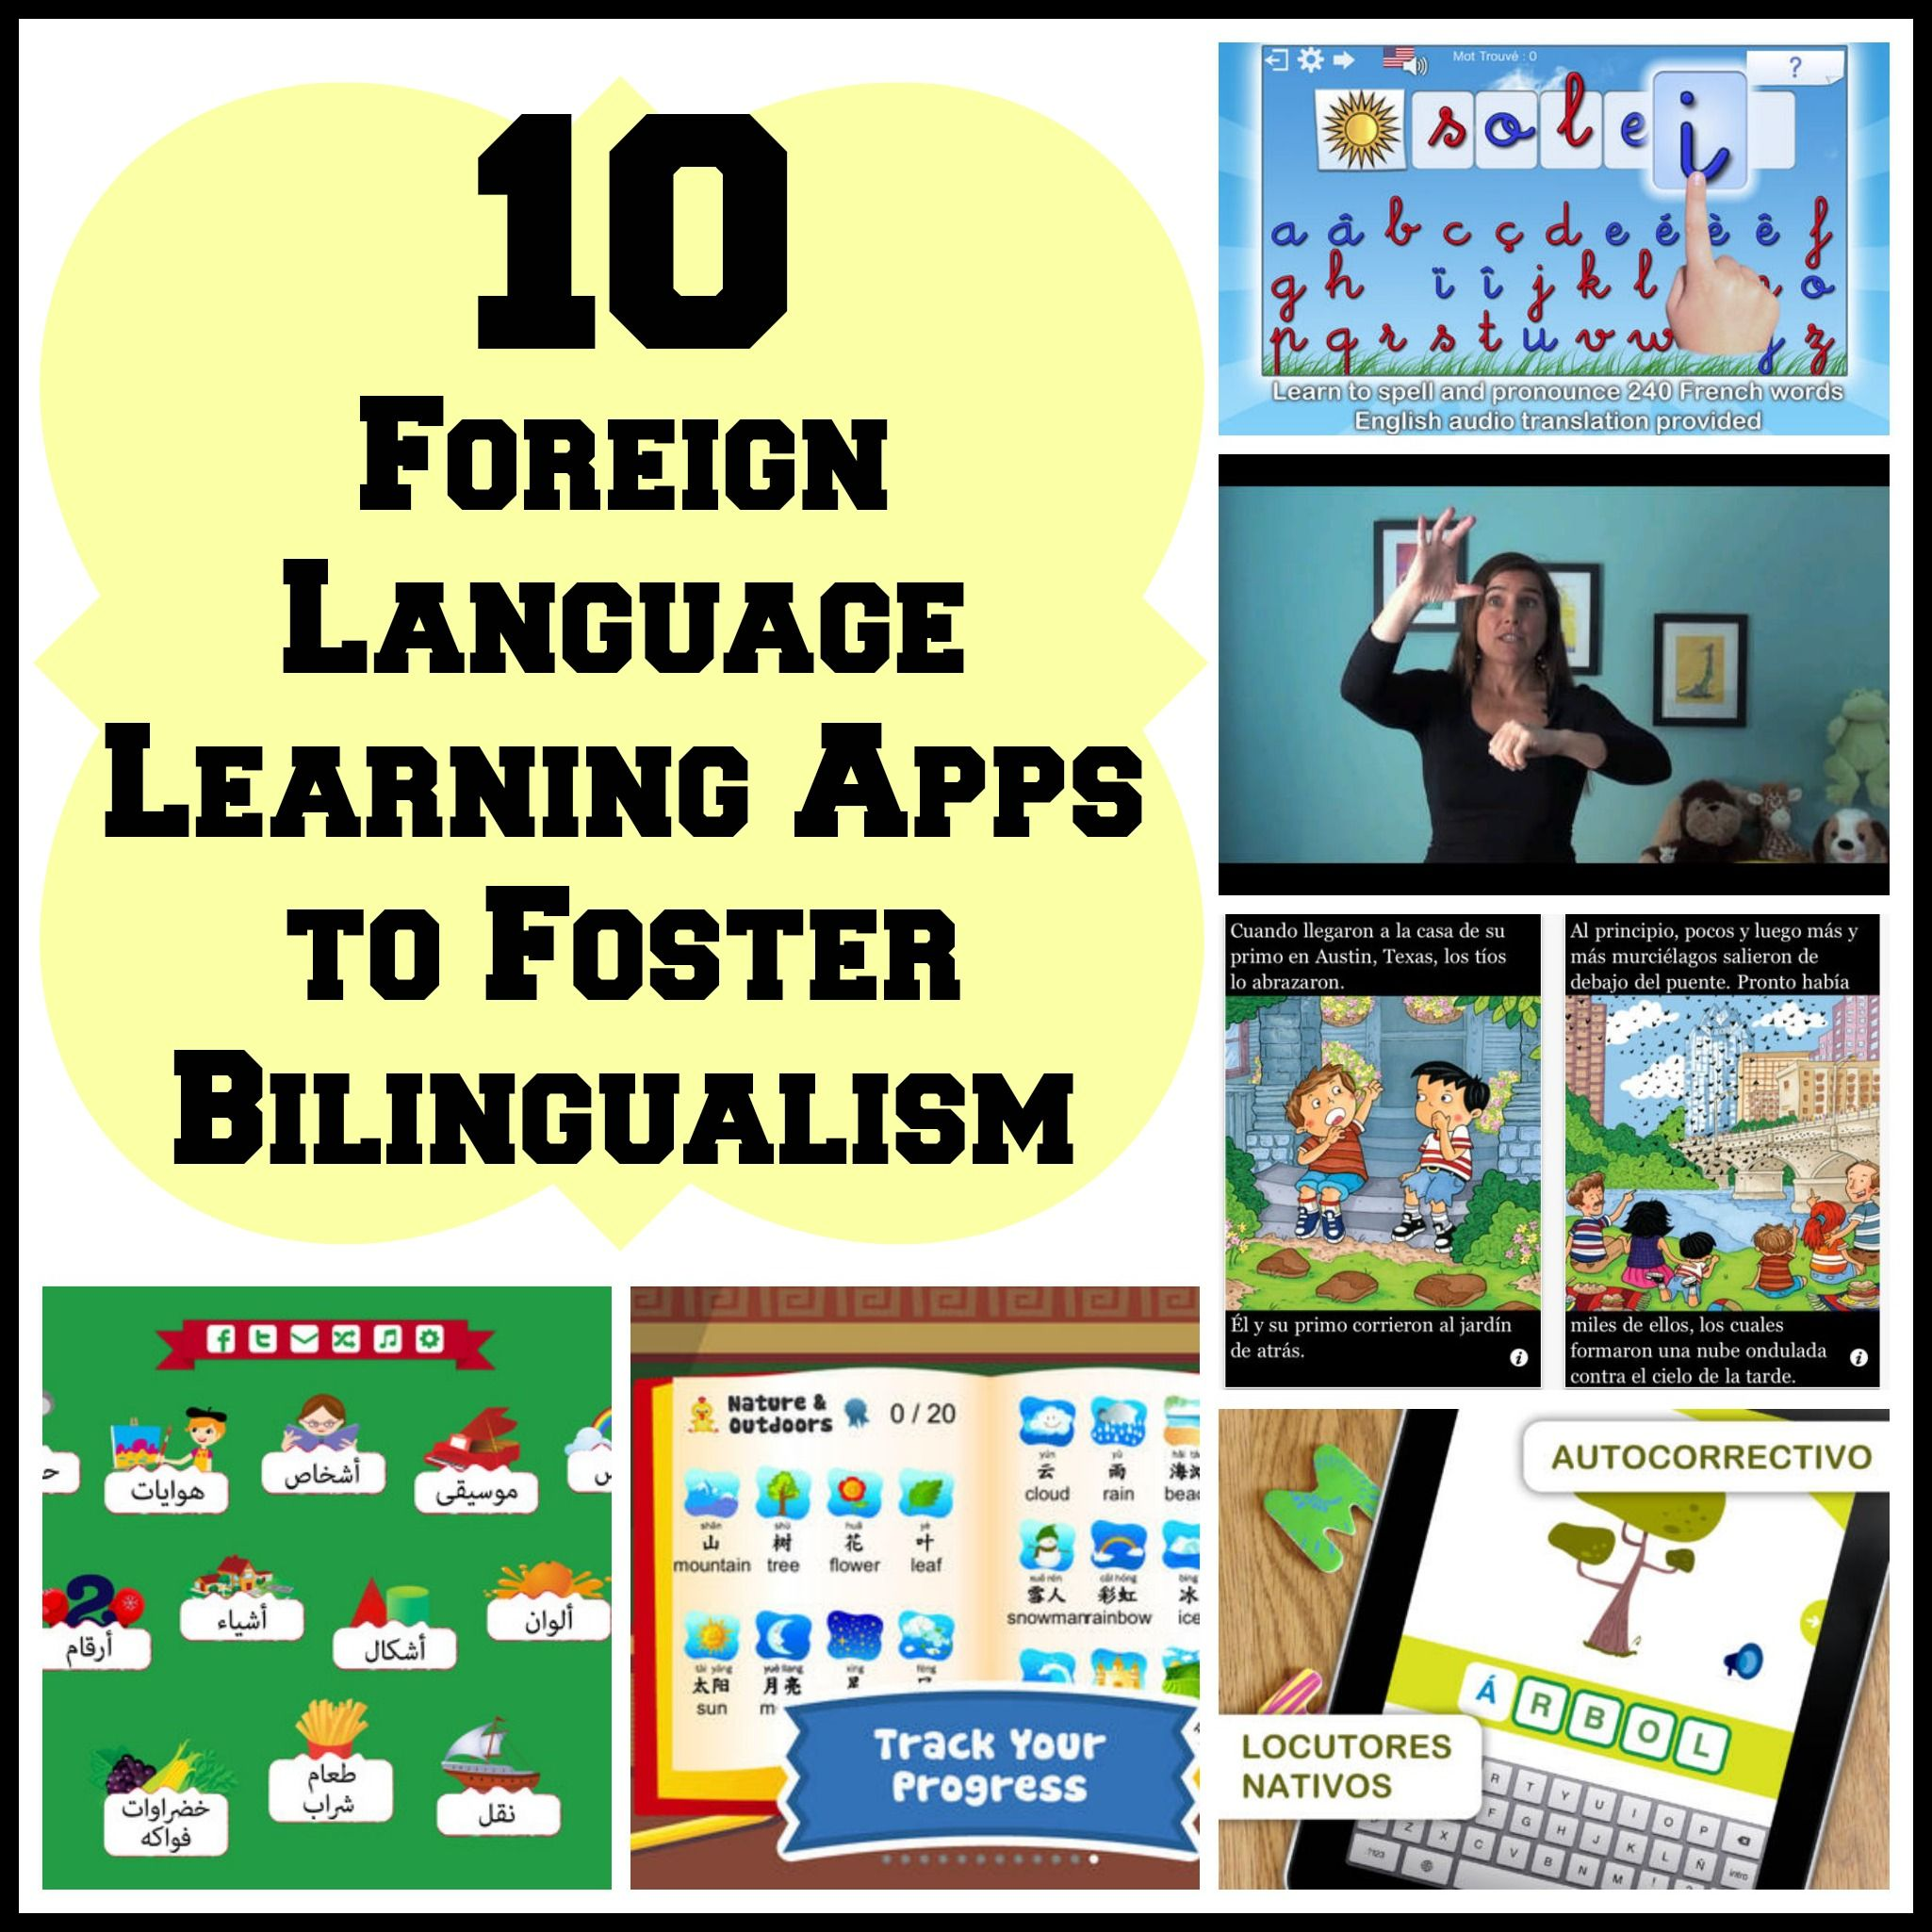 apps to help teach your kid a foreign language language learning a new language isn t always easy but foreign language learning apps can help through engaging and interactive content try duolingo and fabulo